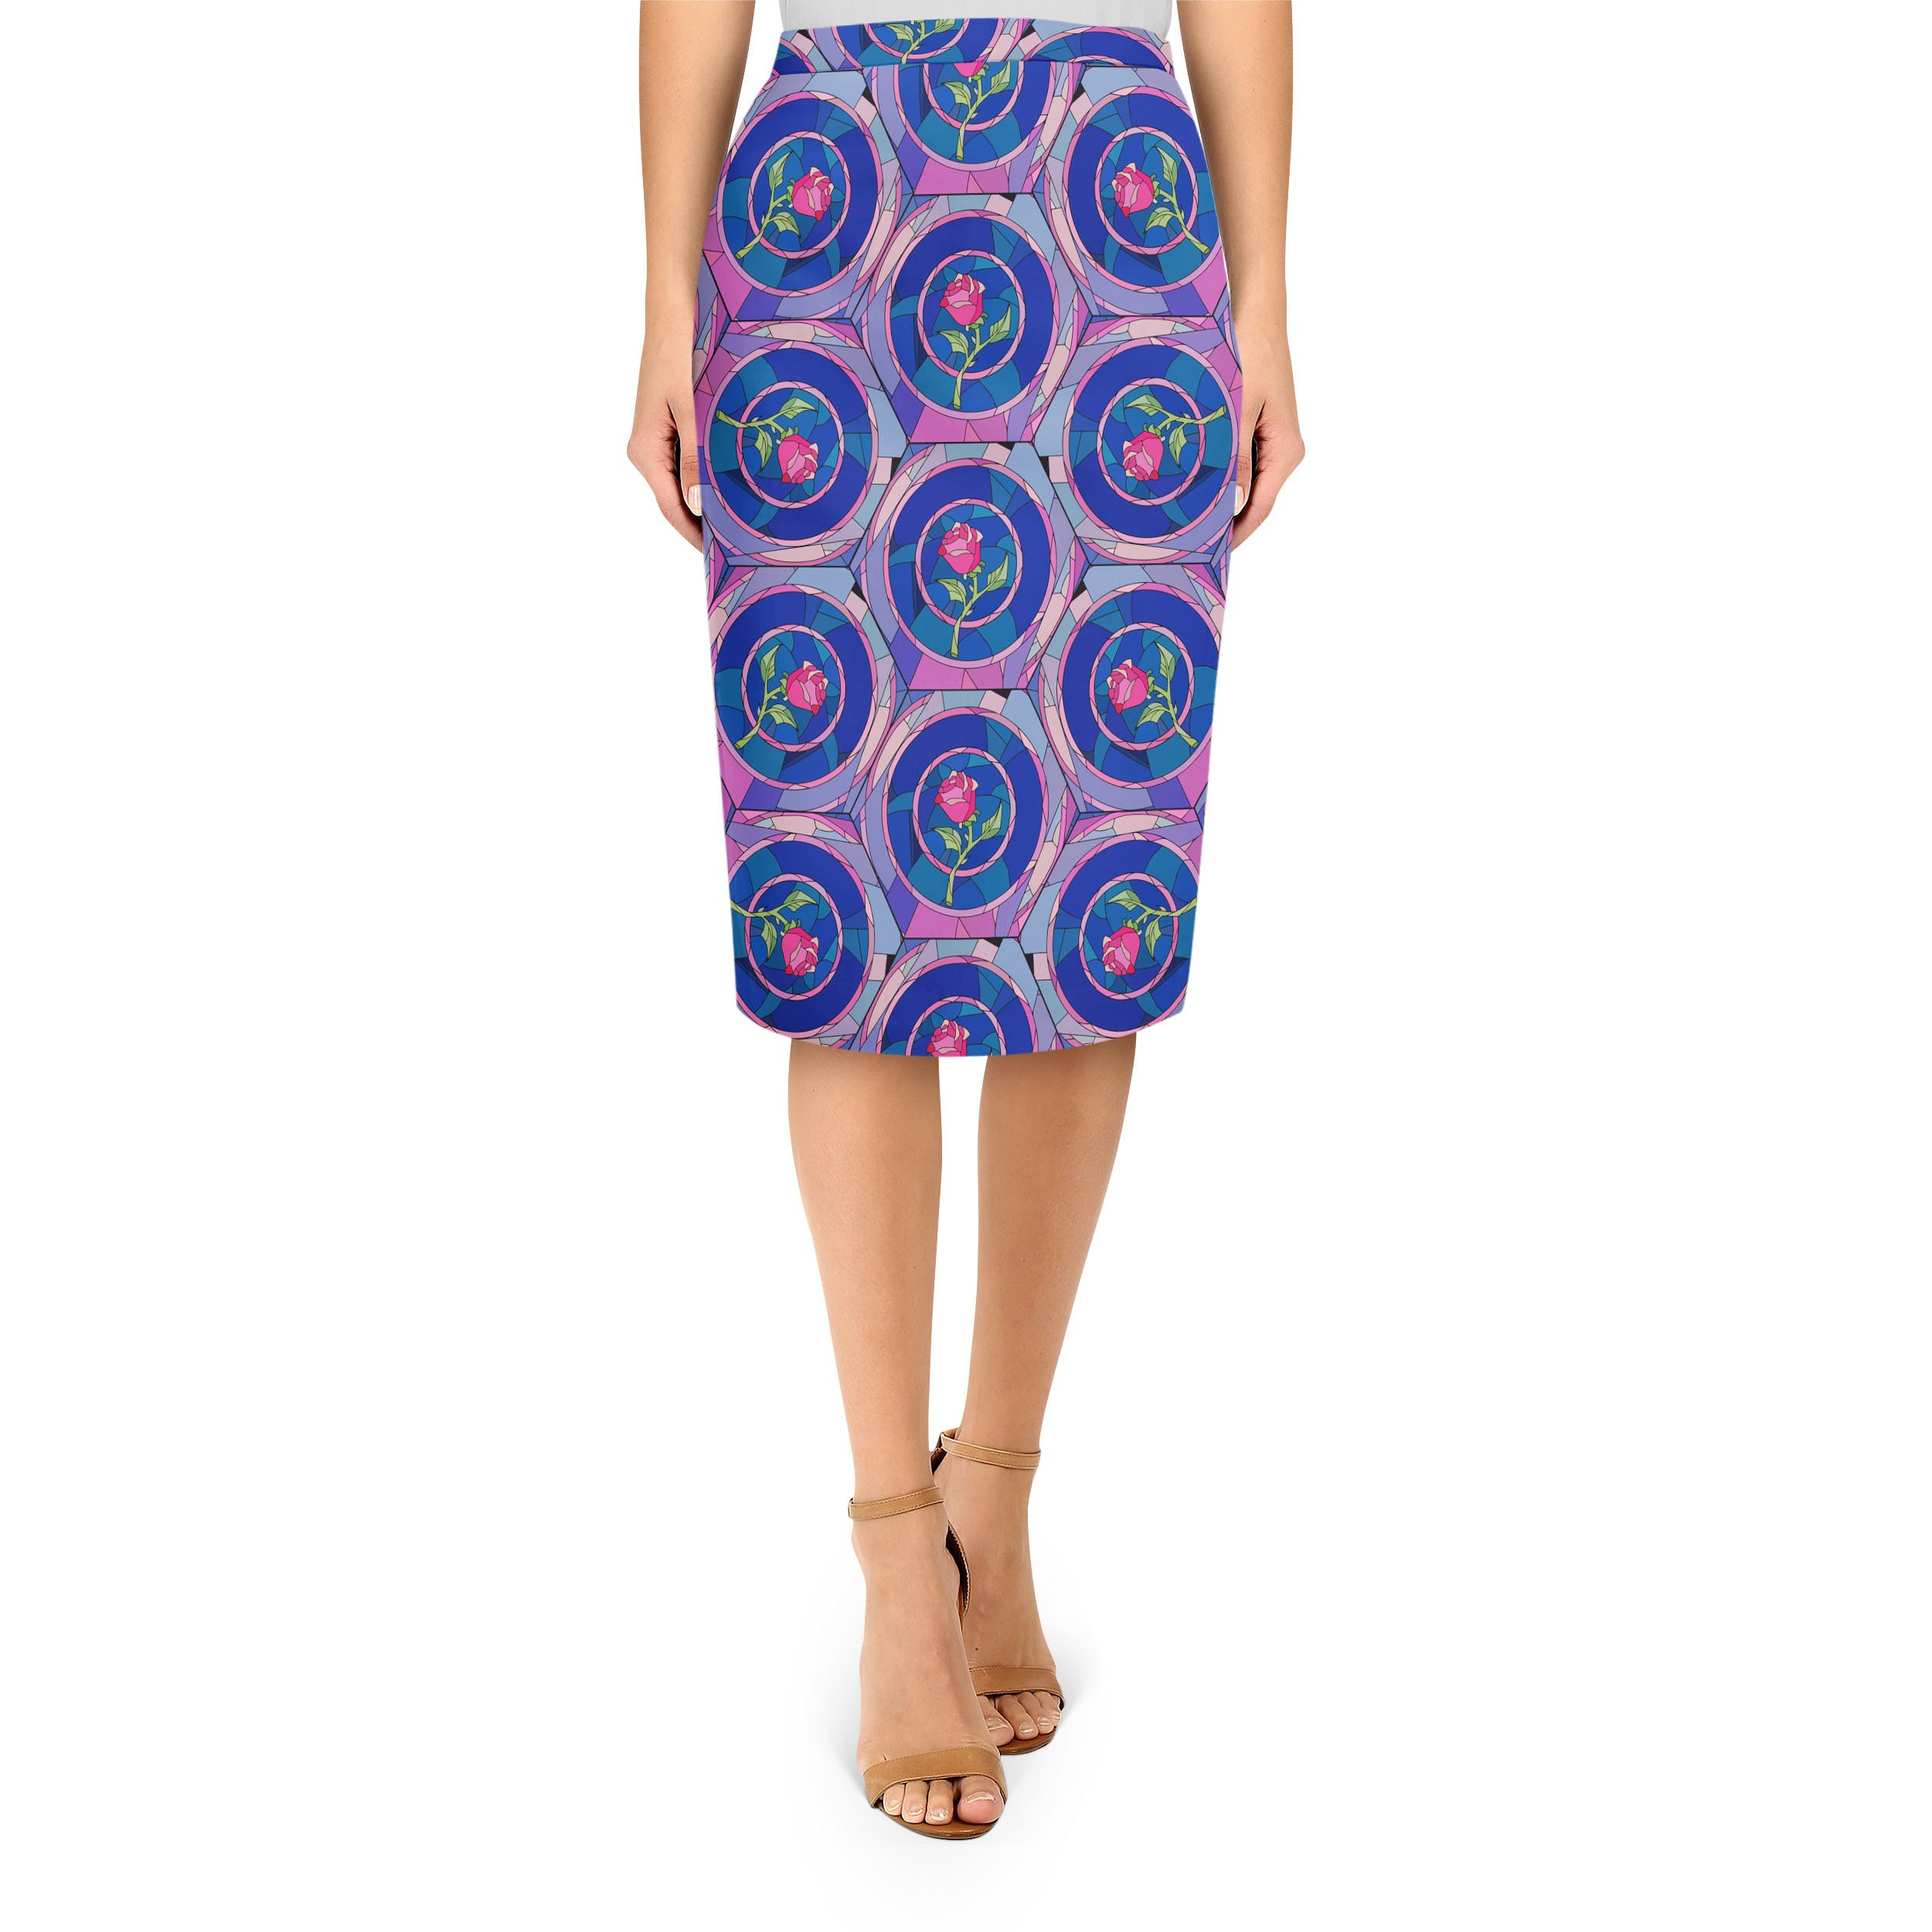 Stained Glass Rose Disney Inspired Midi Pencil Skirt - 3XL